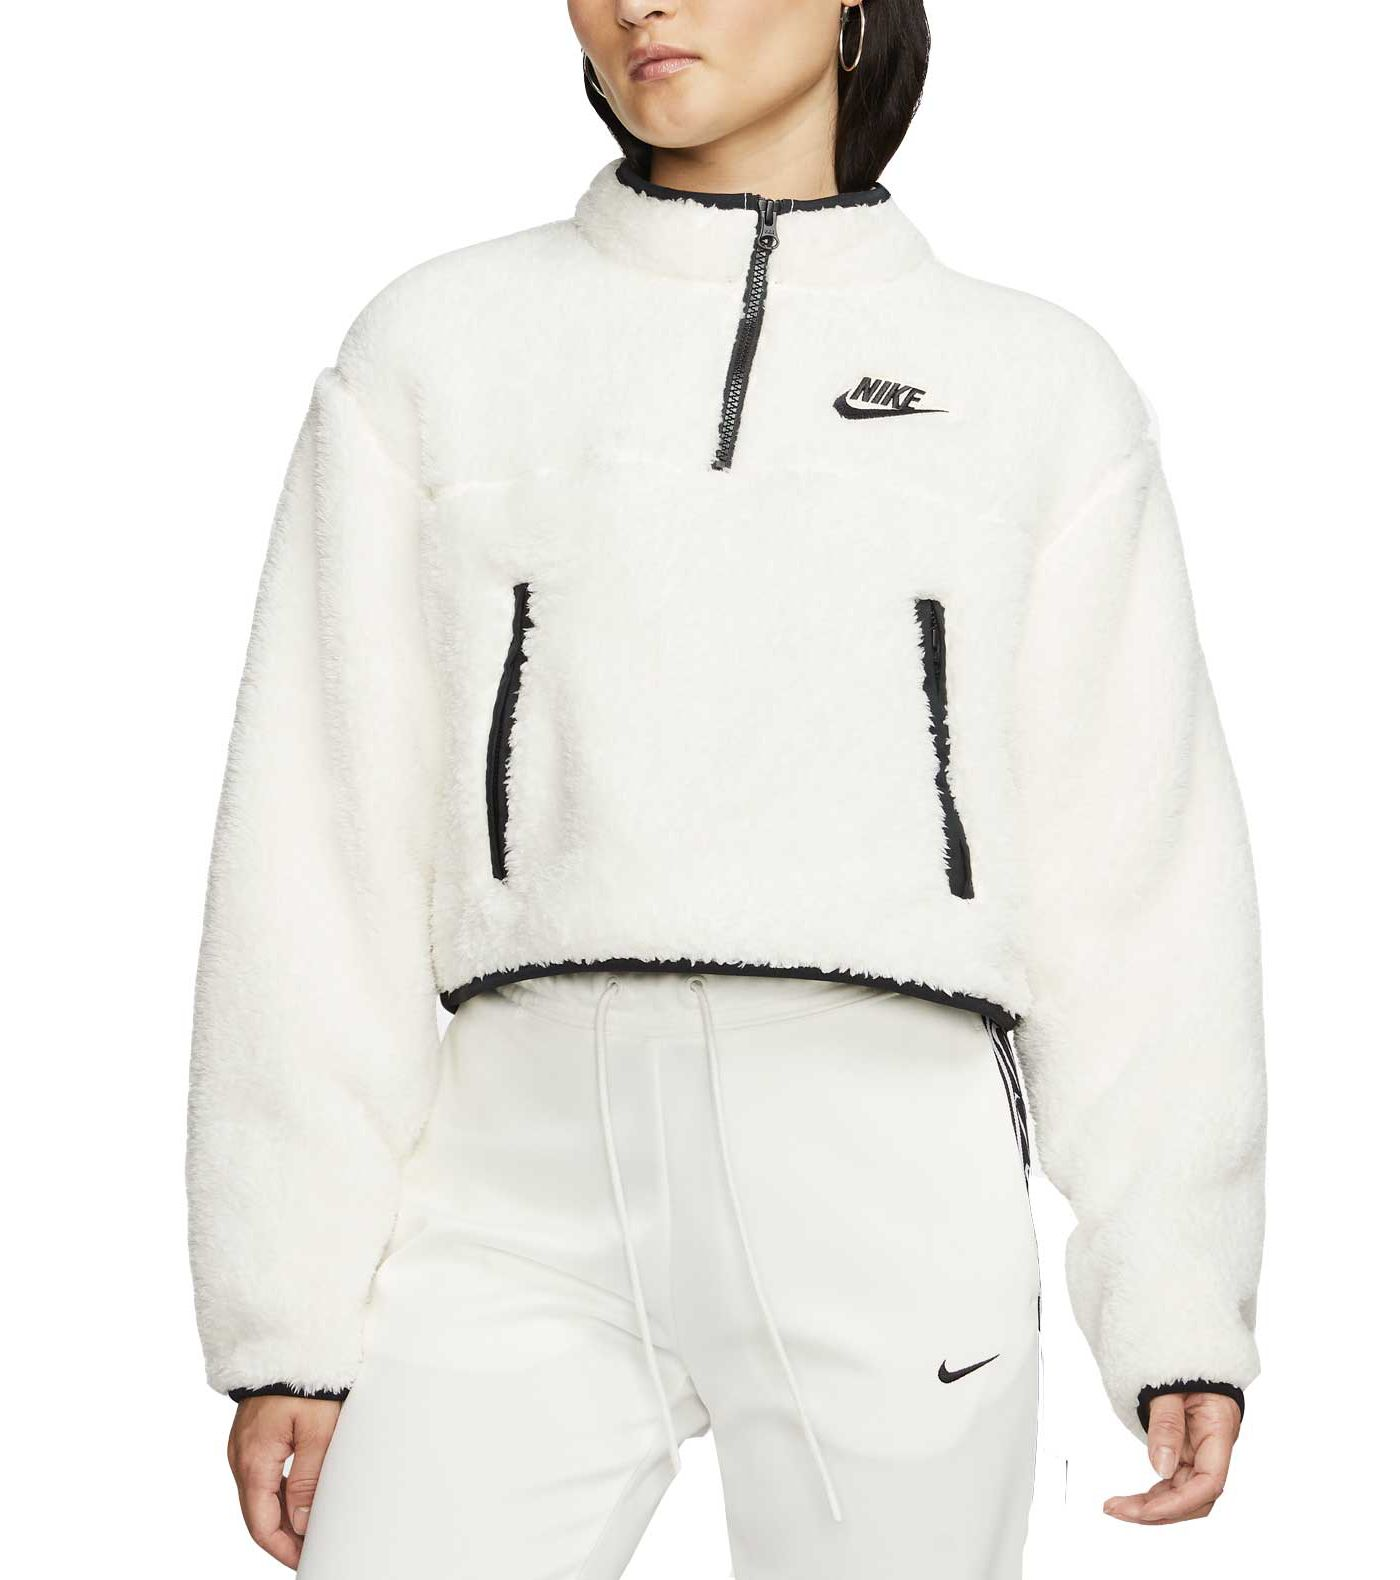 Nike Women's Sportswear ¼ Zip Fleece Crop Pullover